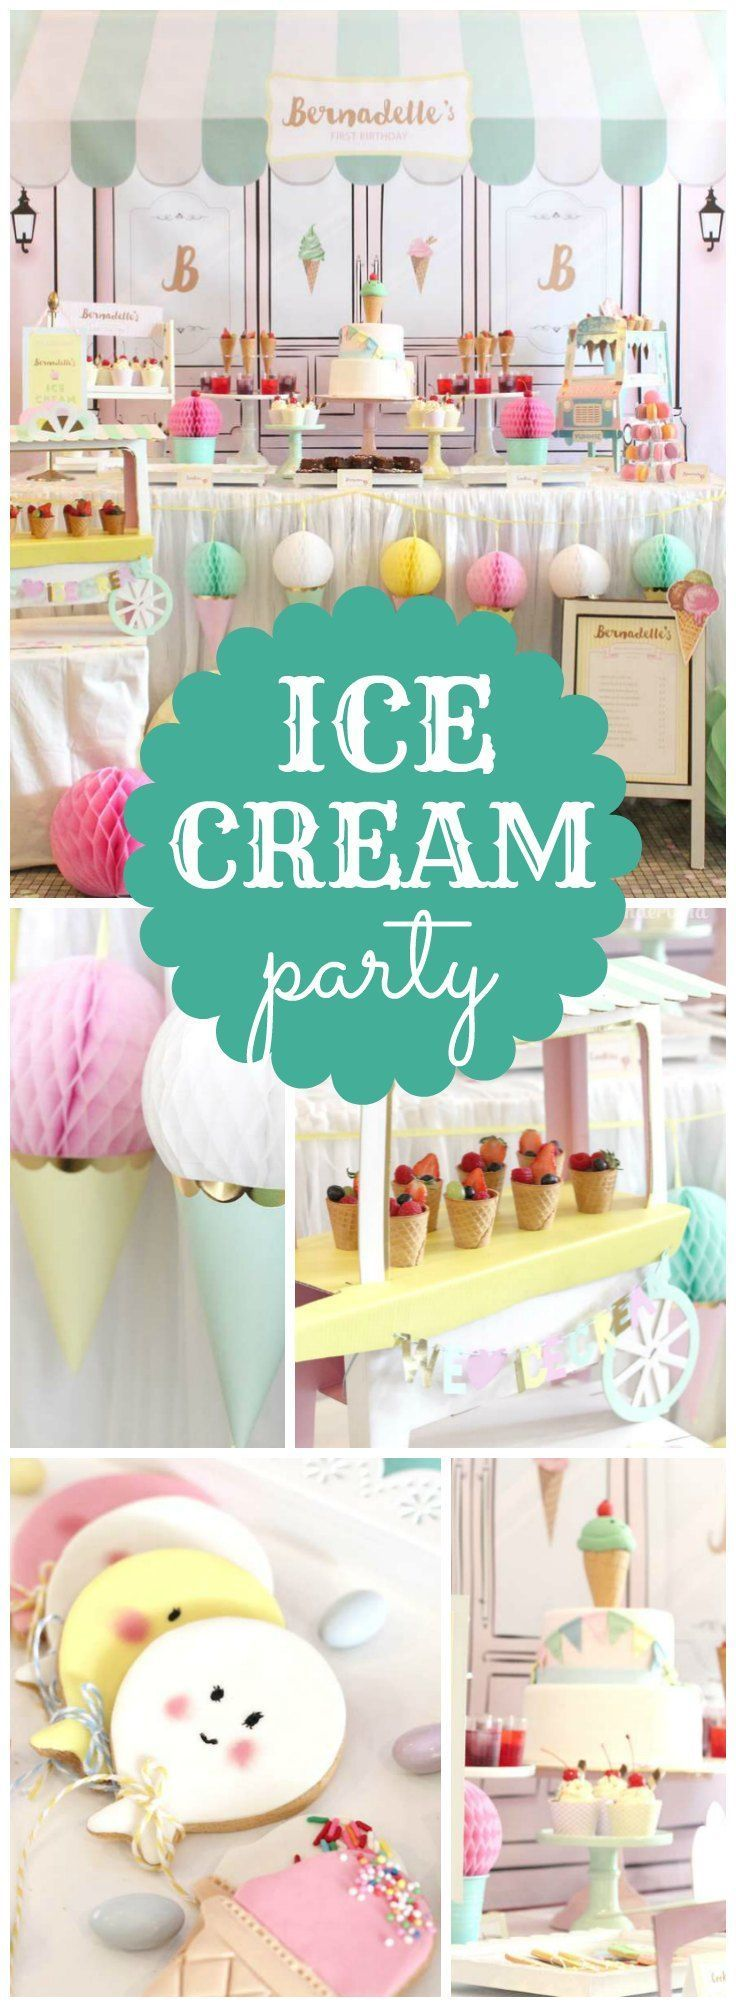 84 best event images by 최혜영 on Pinterest | Ice cream, Fun food ...